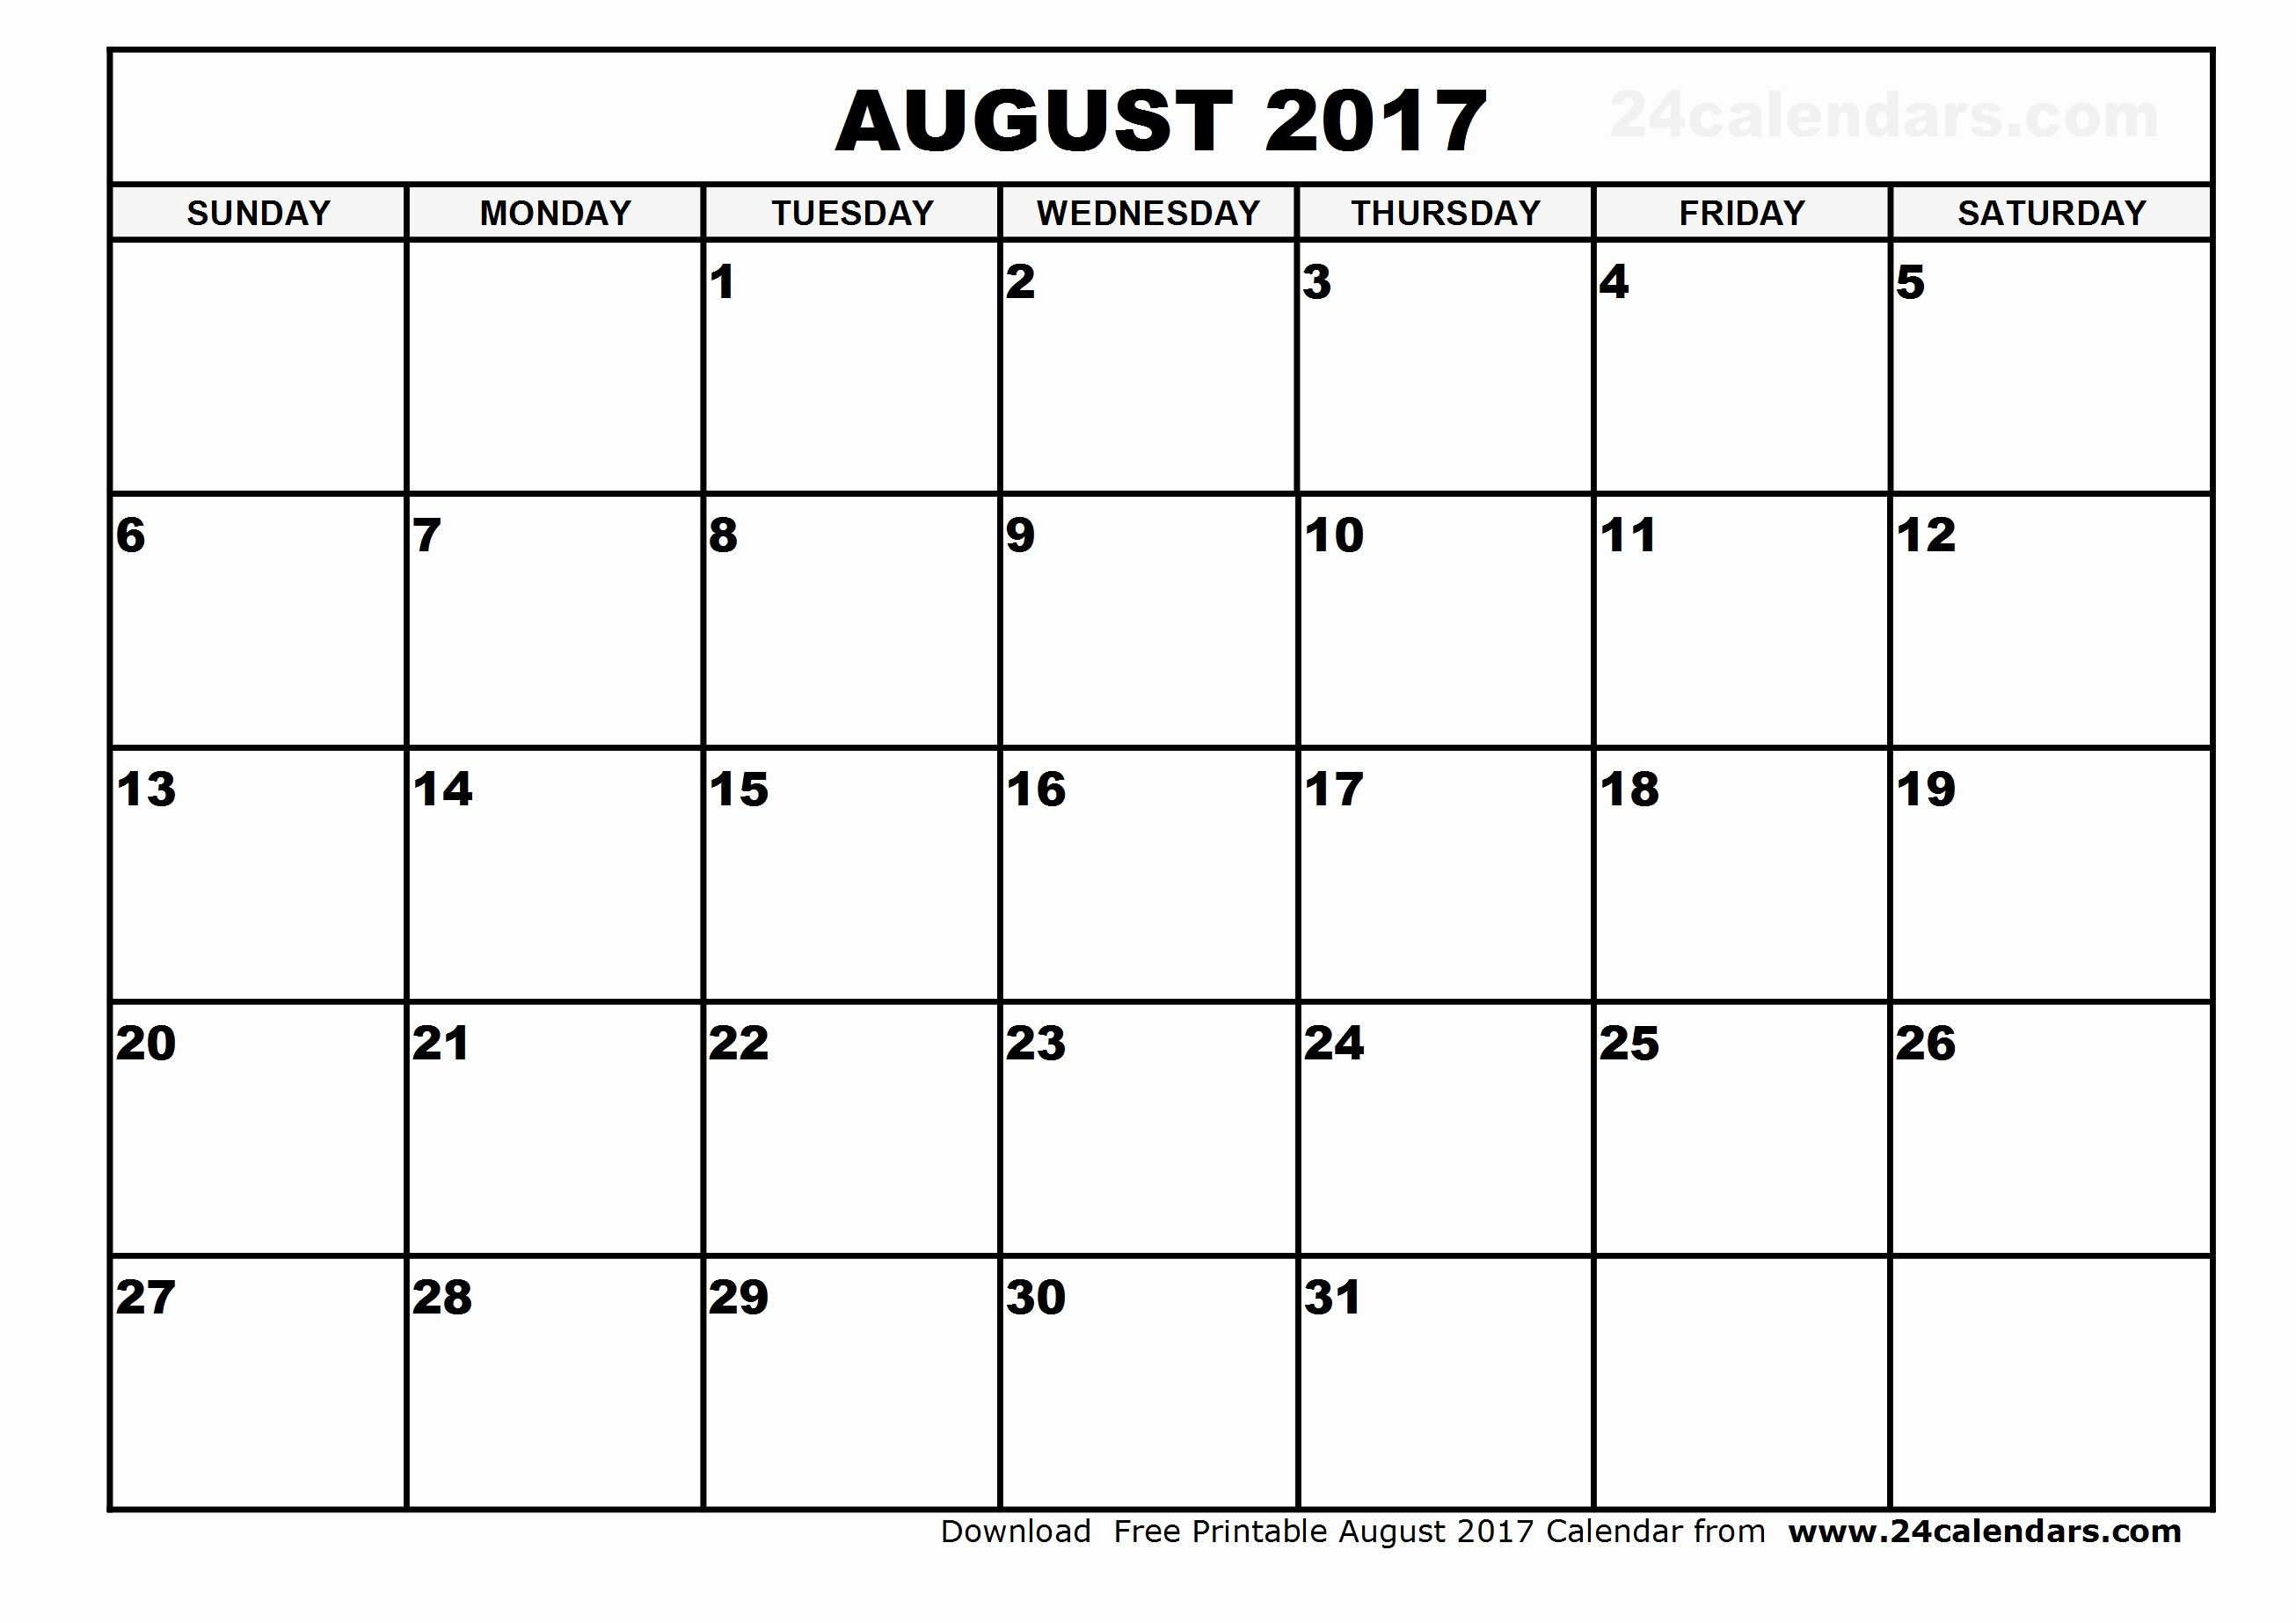 Excel Calendar 2017 with Holidays Fresh August 2017 Calendar Excel